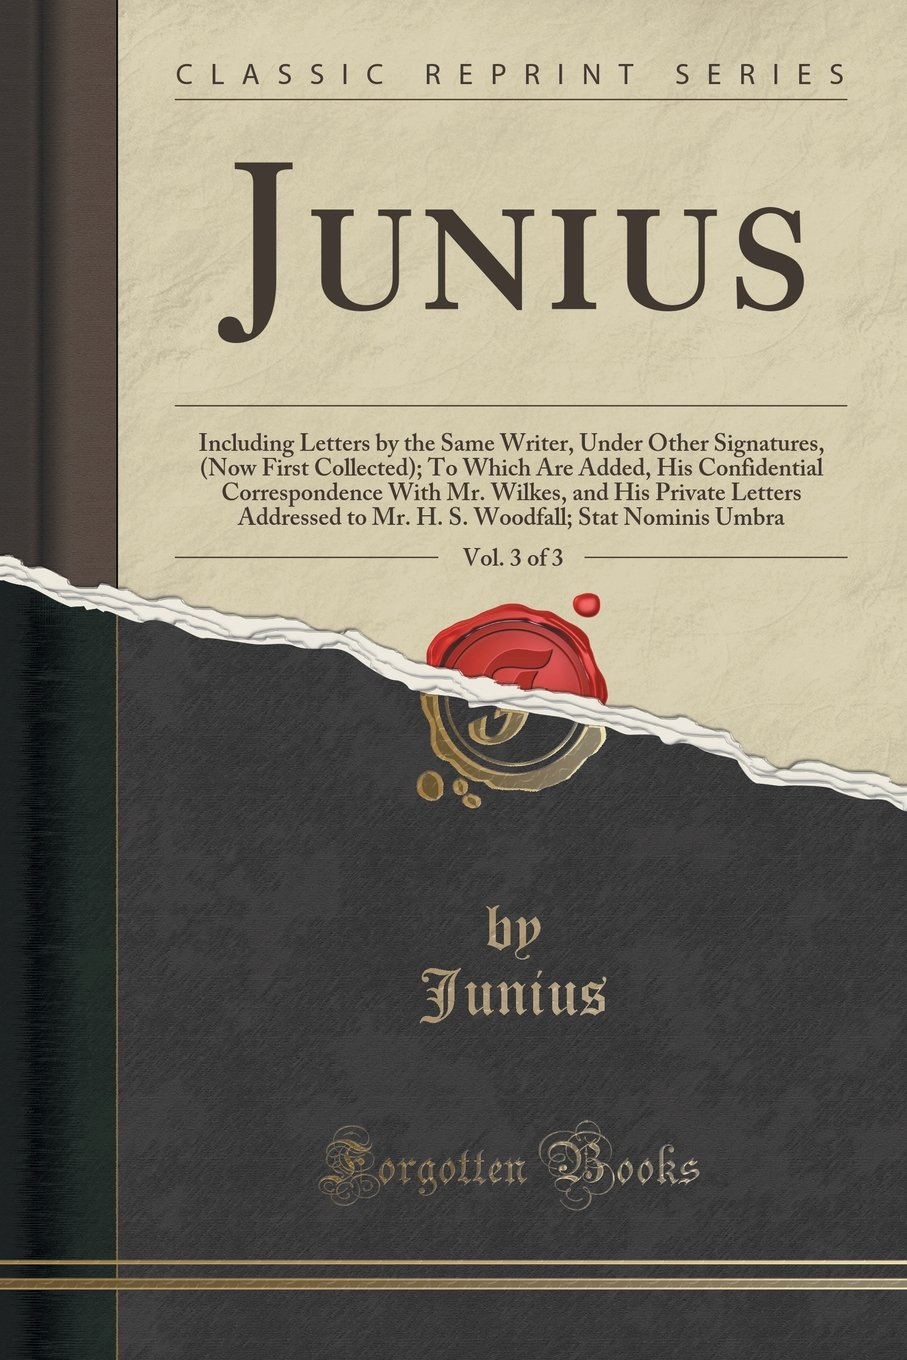 Download Junius, Vol. 3 of 3: Including Letters by the Same Writer, Under Other Signatures, (Now First Collected); To Which Are Added, His Confidential ... to Mr. H. S. Woodfall; Stat Nominis Umbra pdf epub